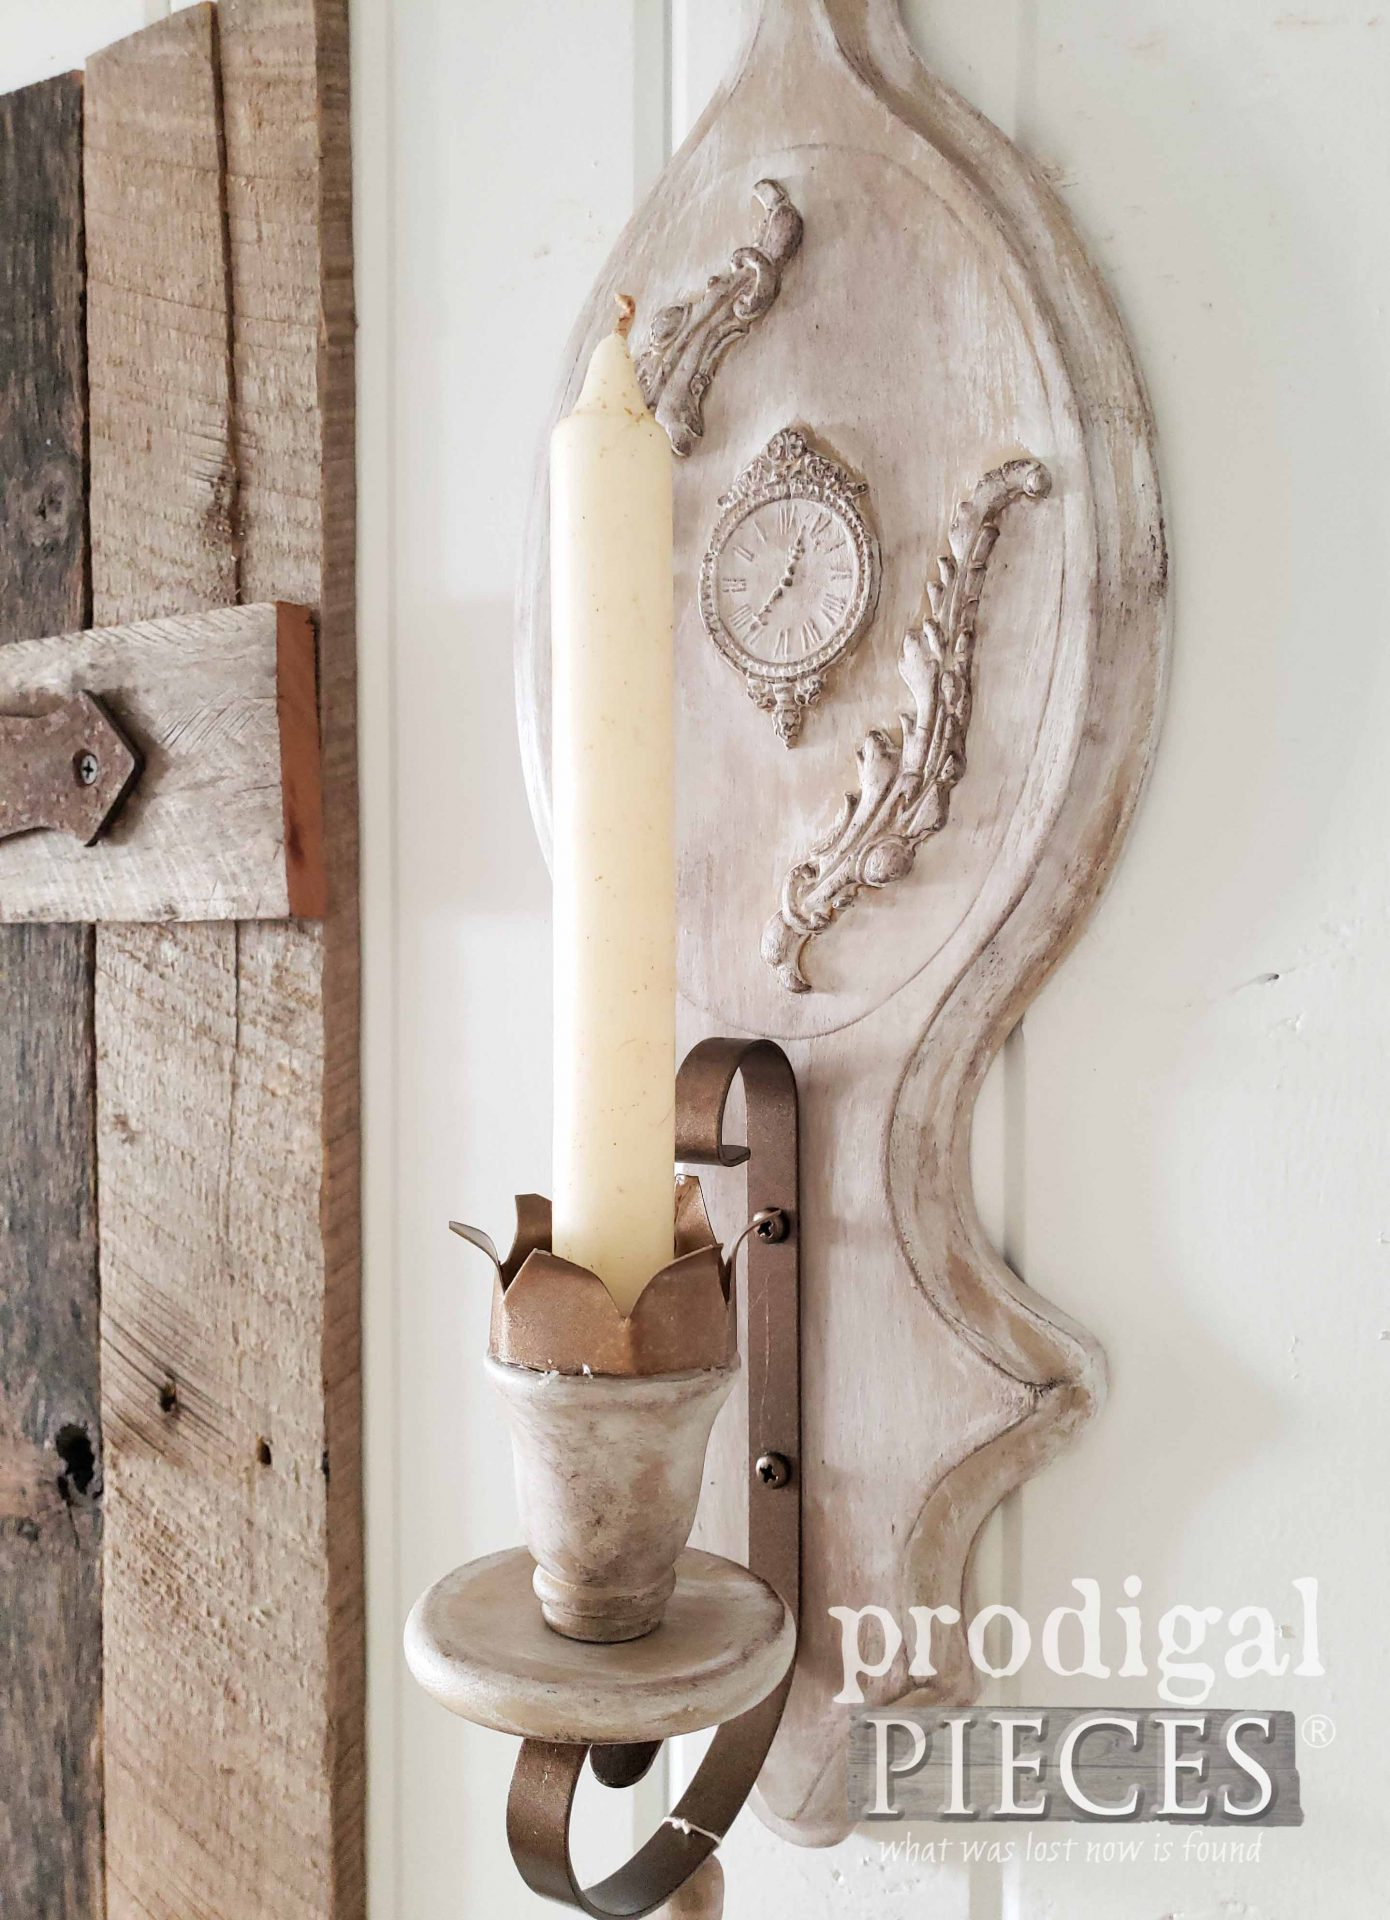 Handmade Candle Sconce by Larissa of Prodigal Pieces | prodigalpieces.com #prodigalpieces #farmhouse #rustic #chic #homedecor